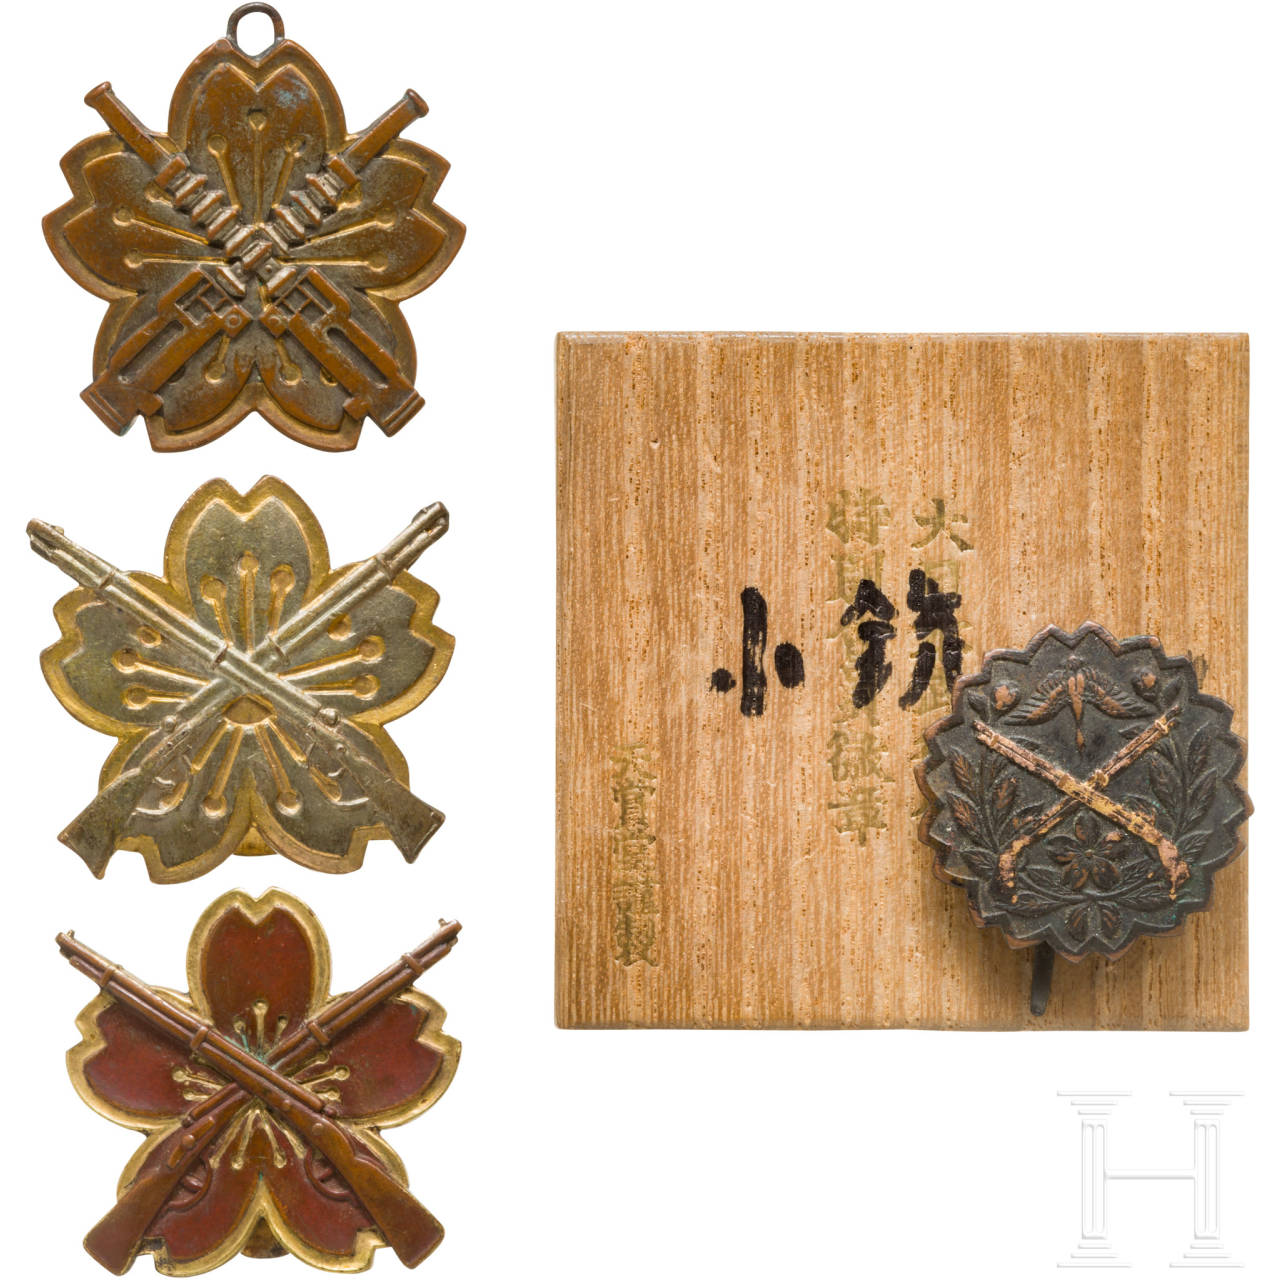 Four shooting badges, Meiji and Showa periods